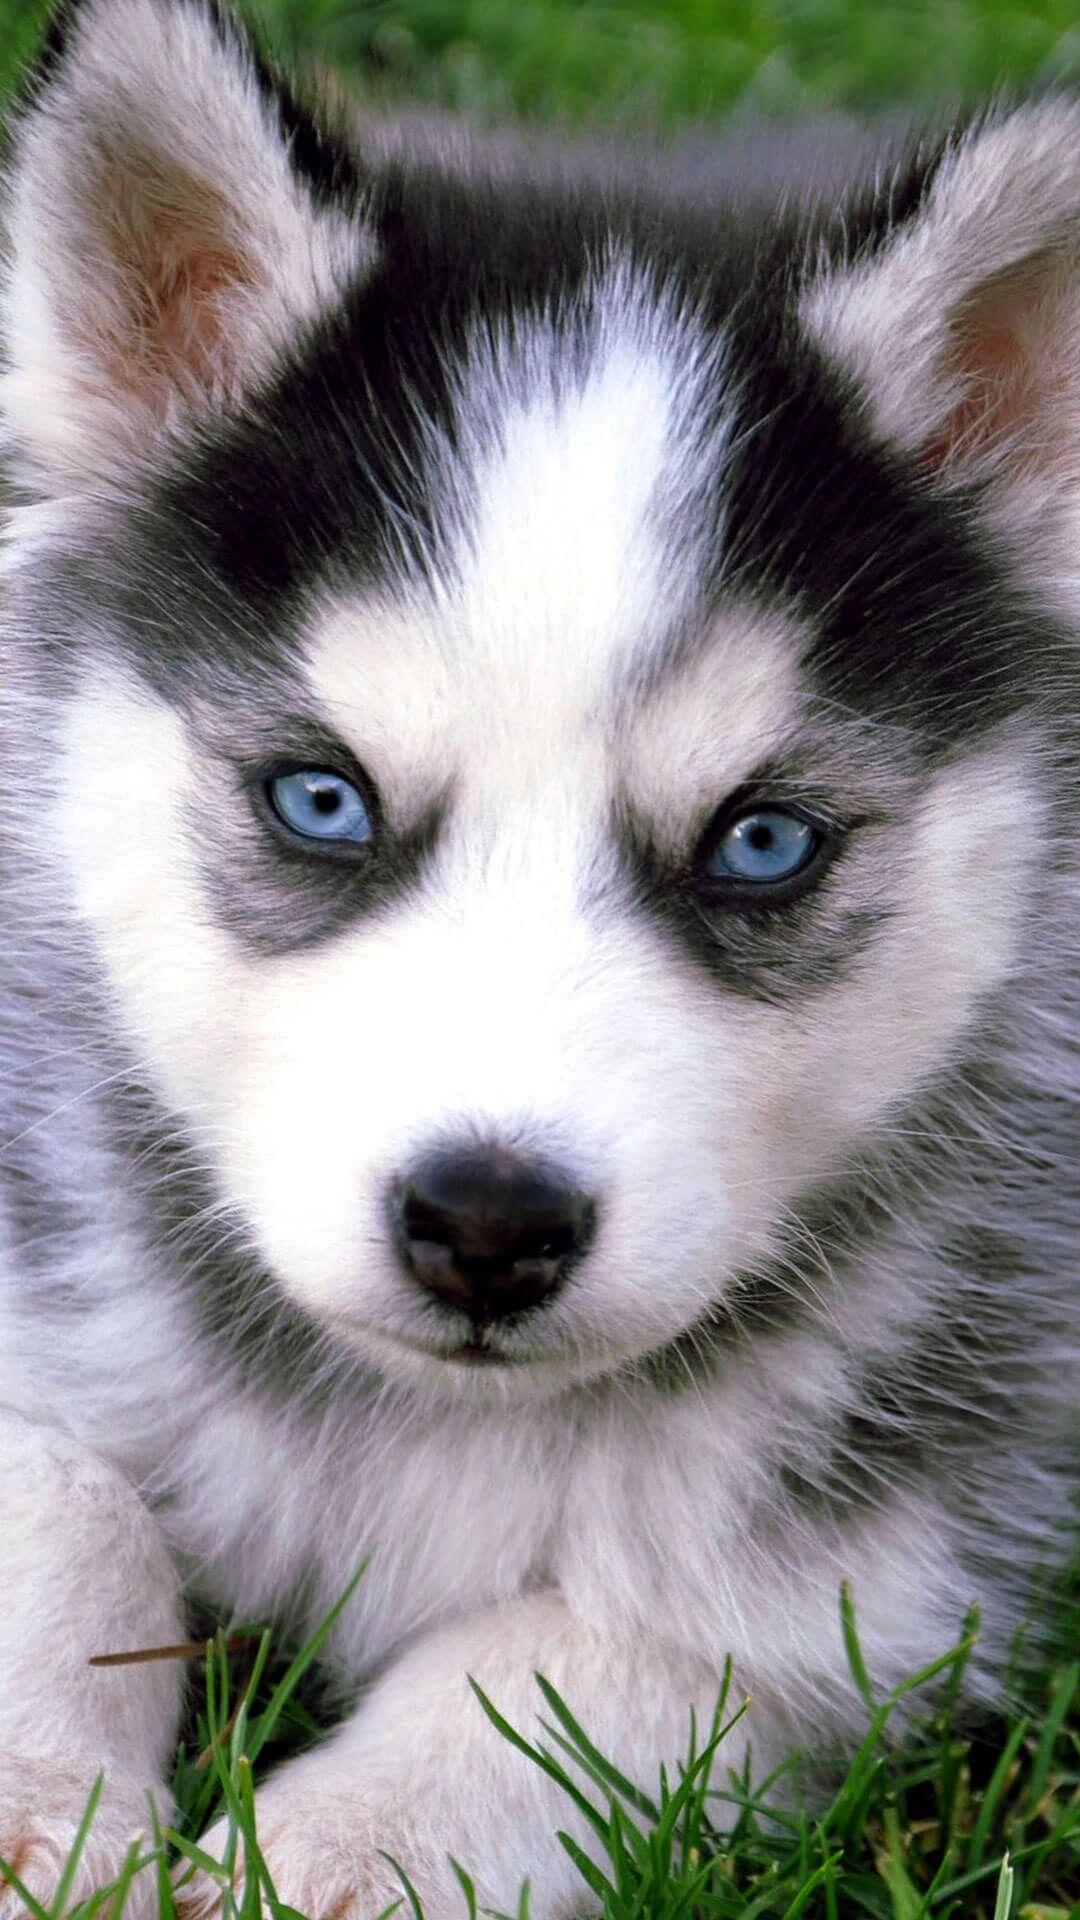 Cute Husky Puppies With Blue Eyes Wallpaper Siberian Husky Puppies Wallpapers Wallpaper Cave